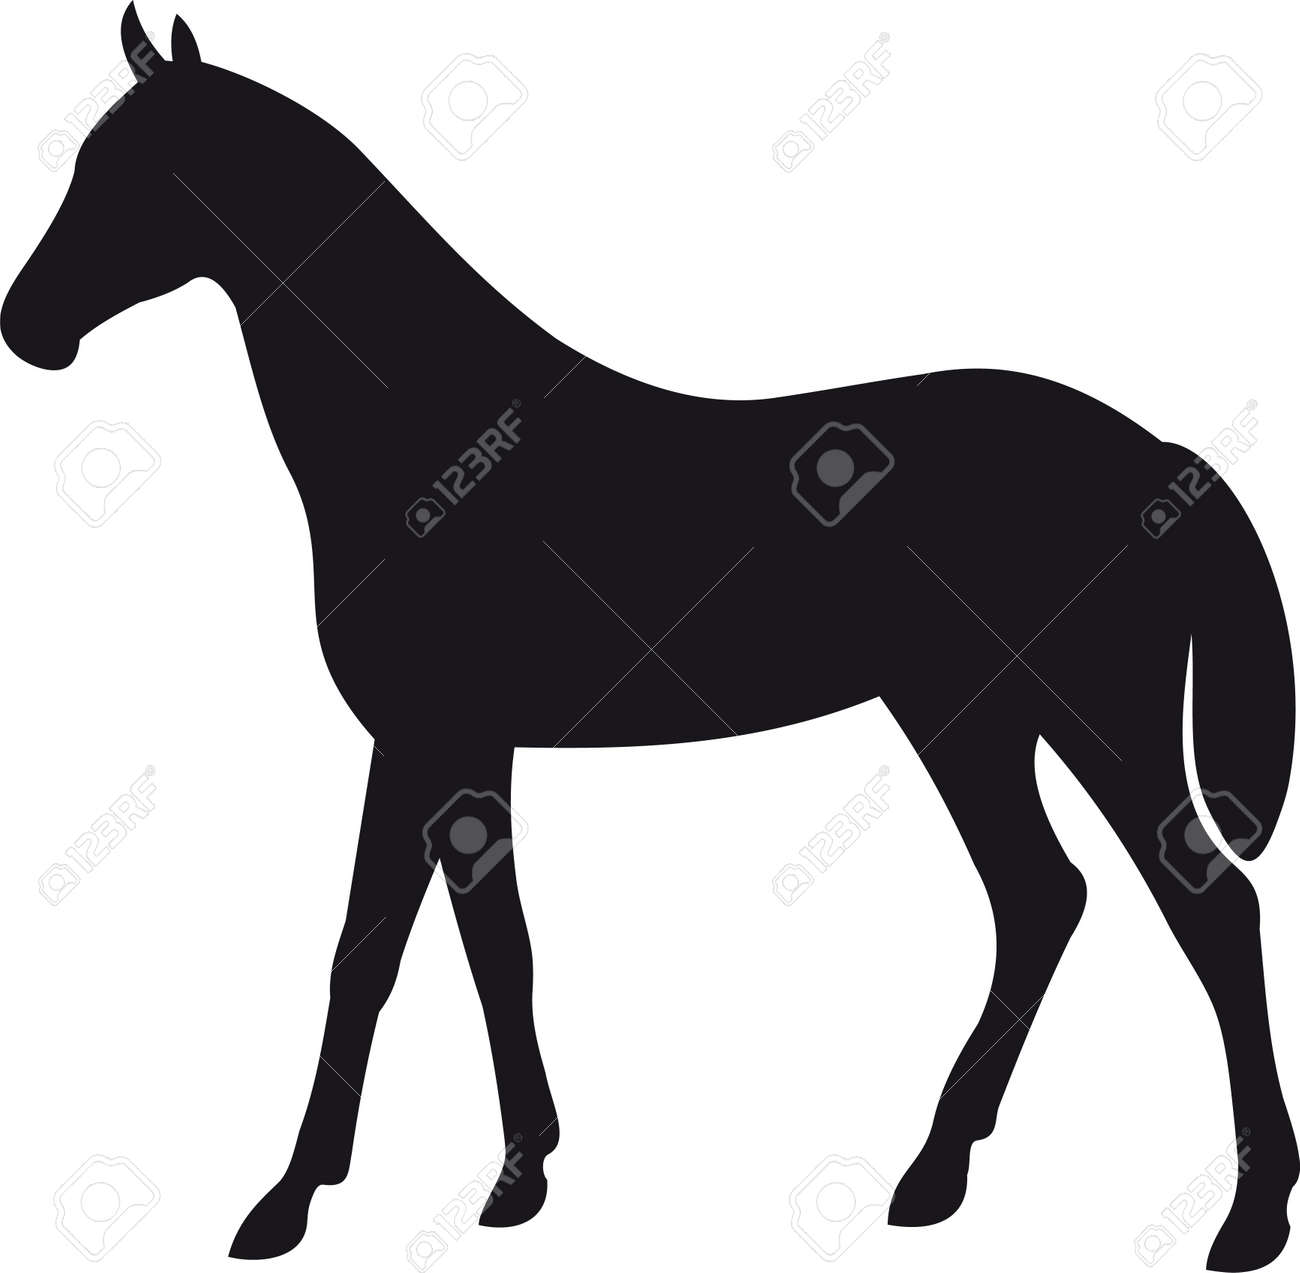 horse silhouette vector royalty free cliparts vectors and stock rh 123rf com rocking horse silhouette vector horse rider silhouette vector